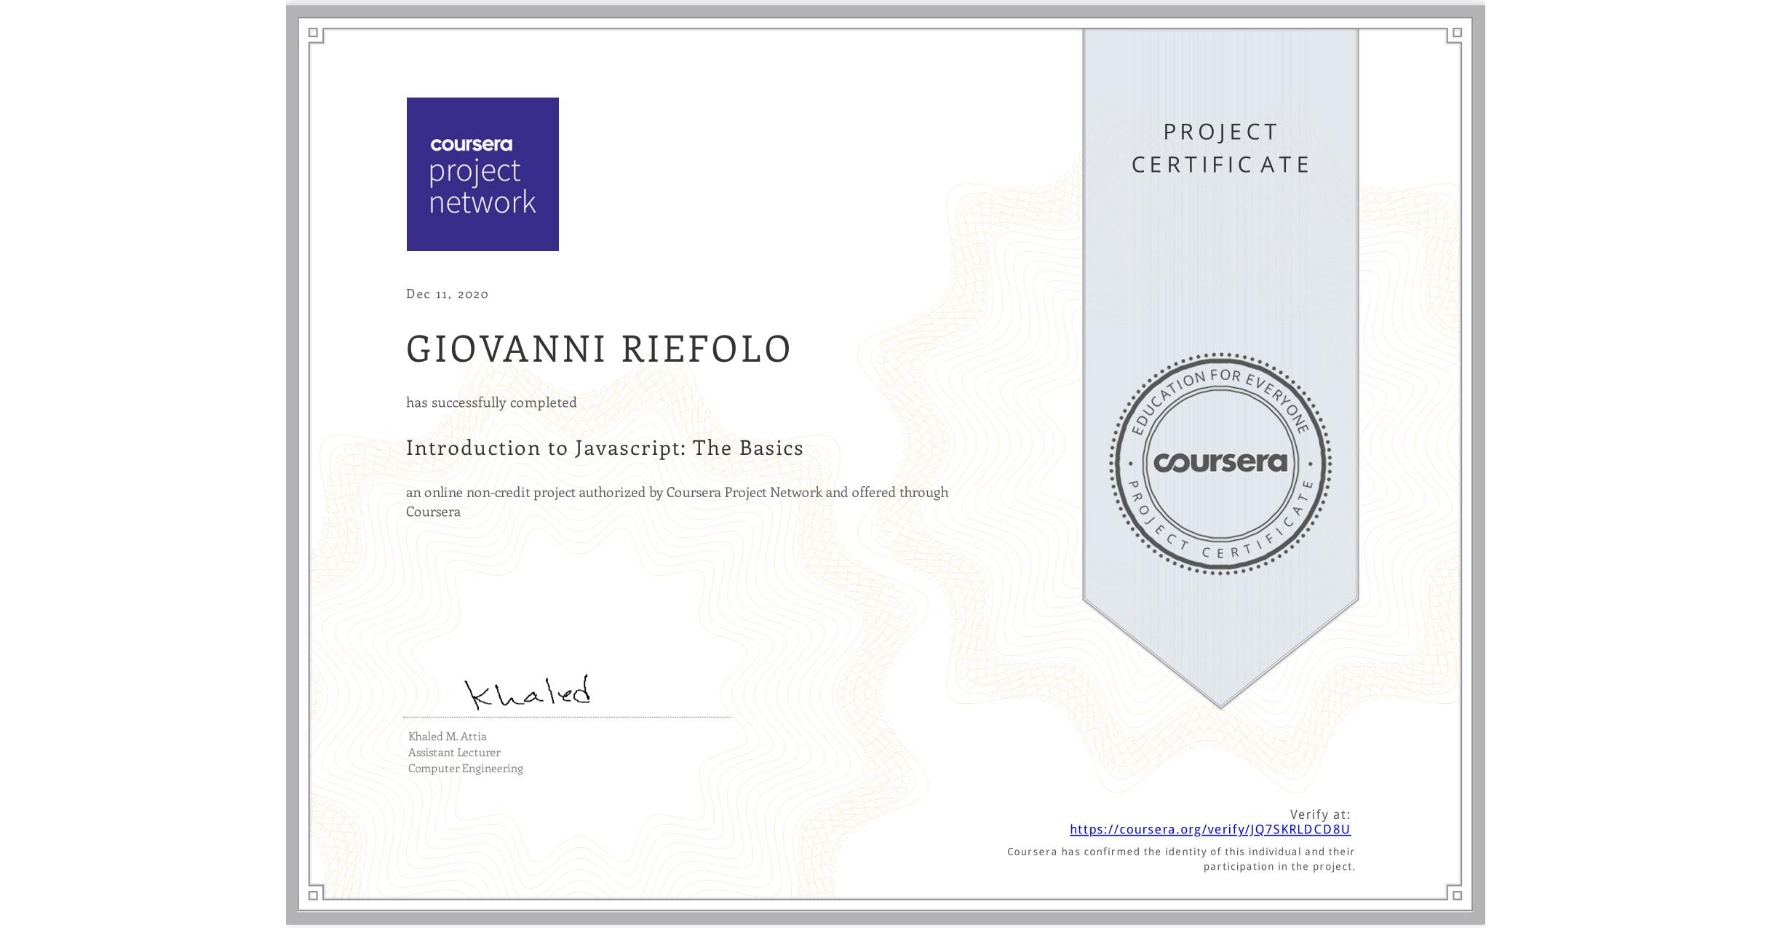 View certificate for GIOVANNI RIEFOLO, Introduction to Javascript: The Basics, an online non-credit course authorized by Coursera Project Network and offered through Coursera